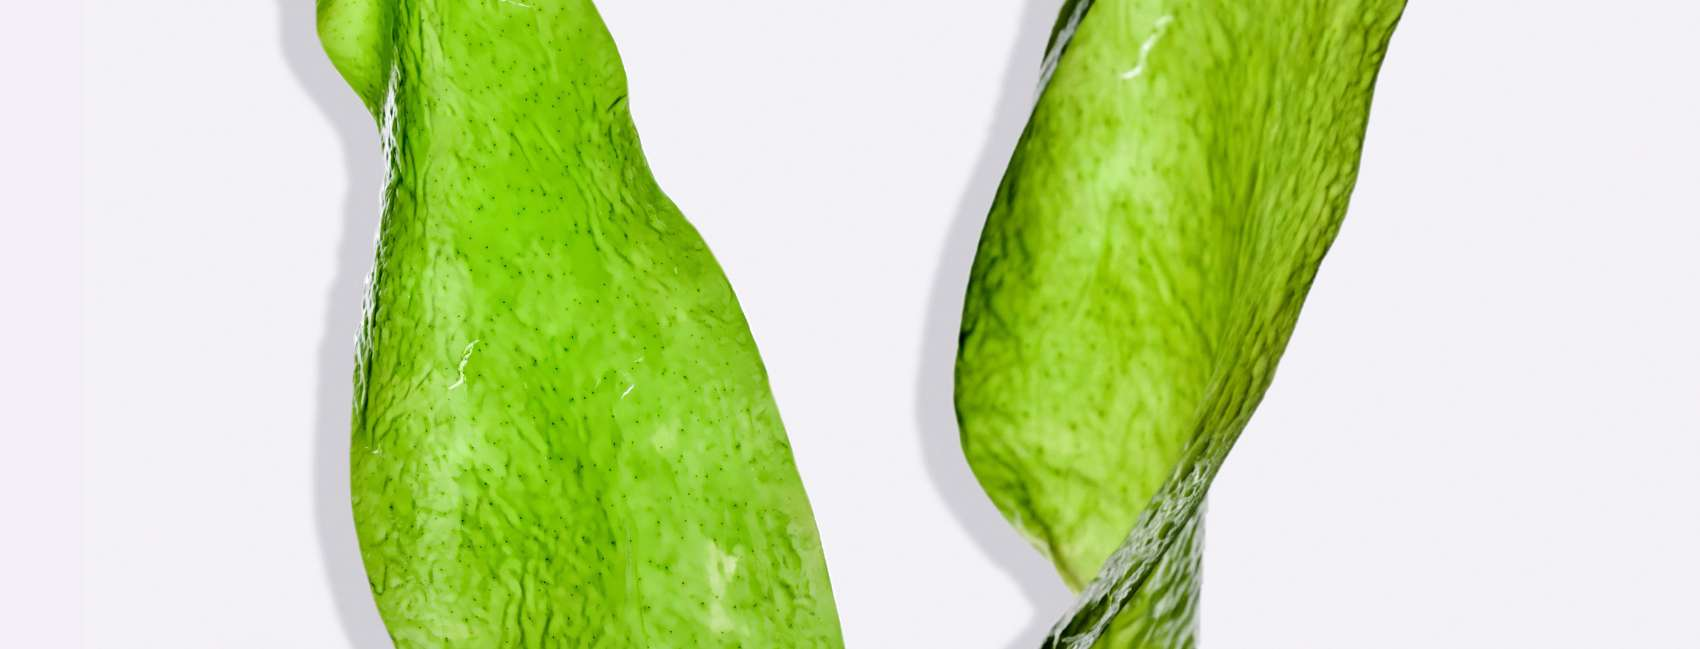 Cross section of green seaweed on grey background